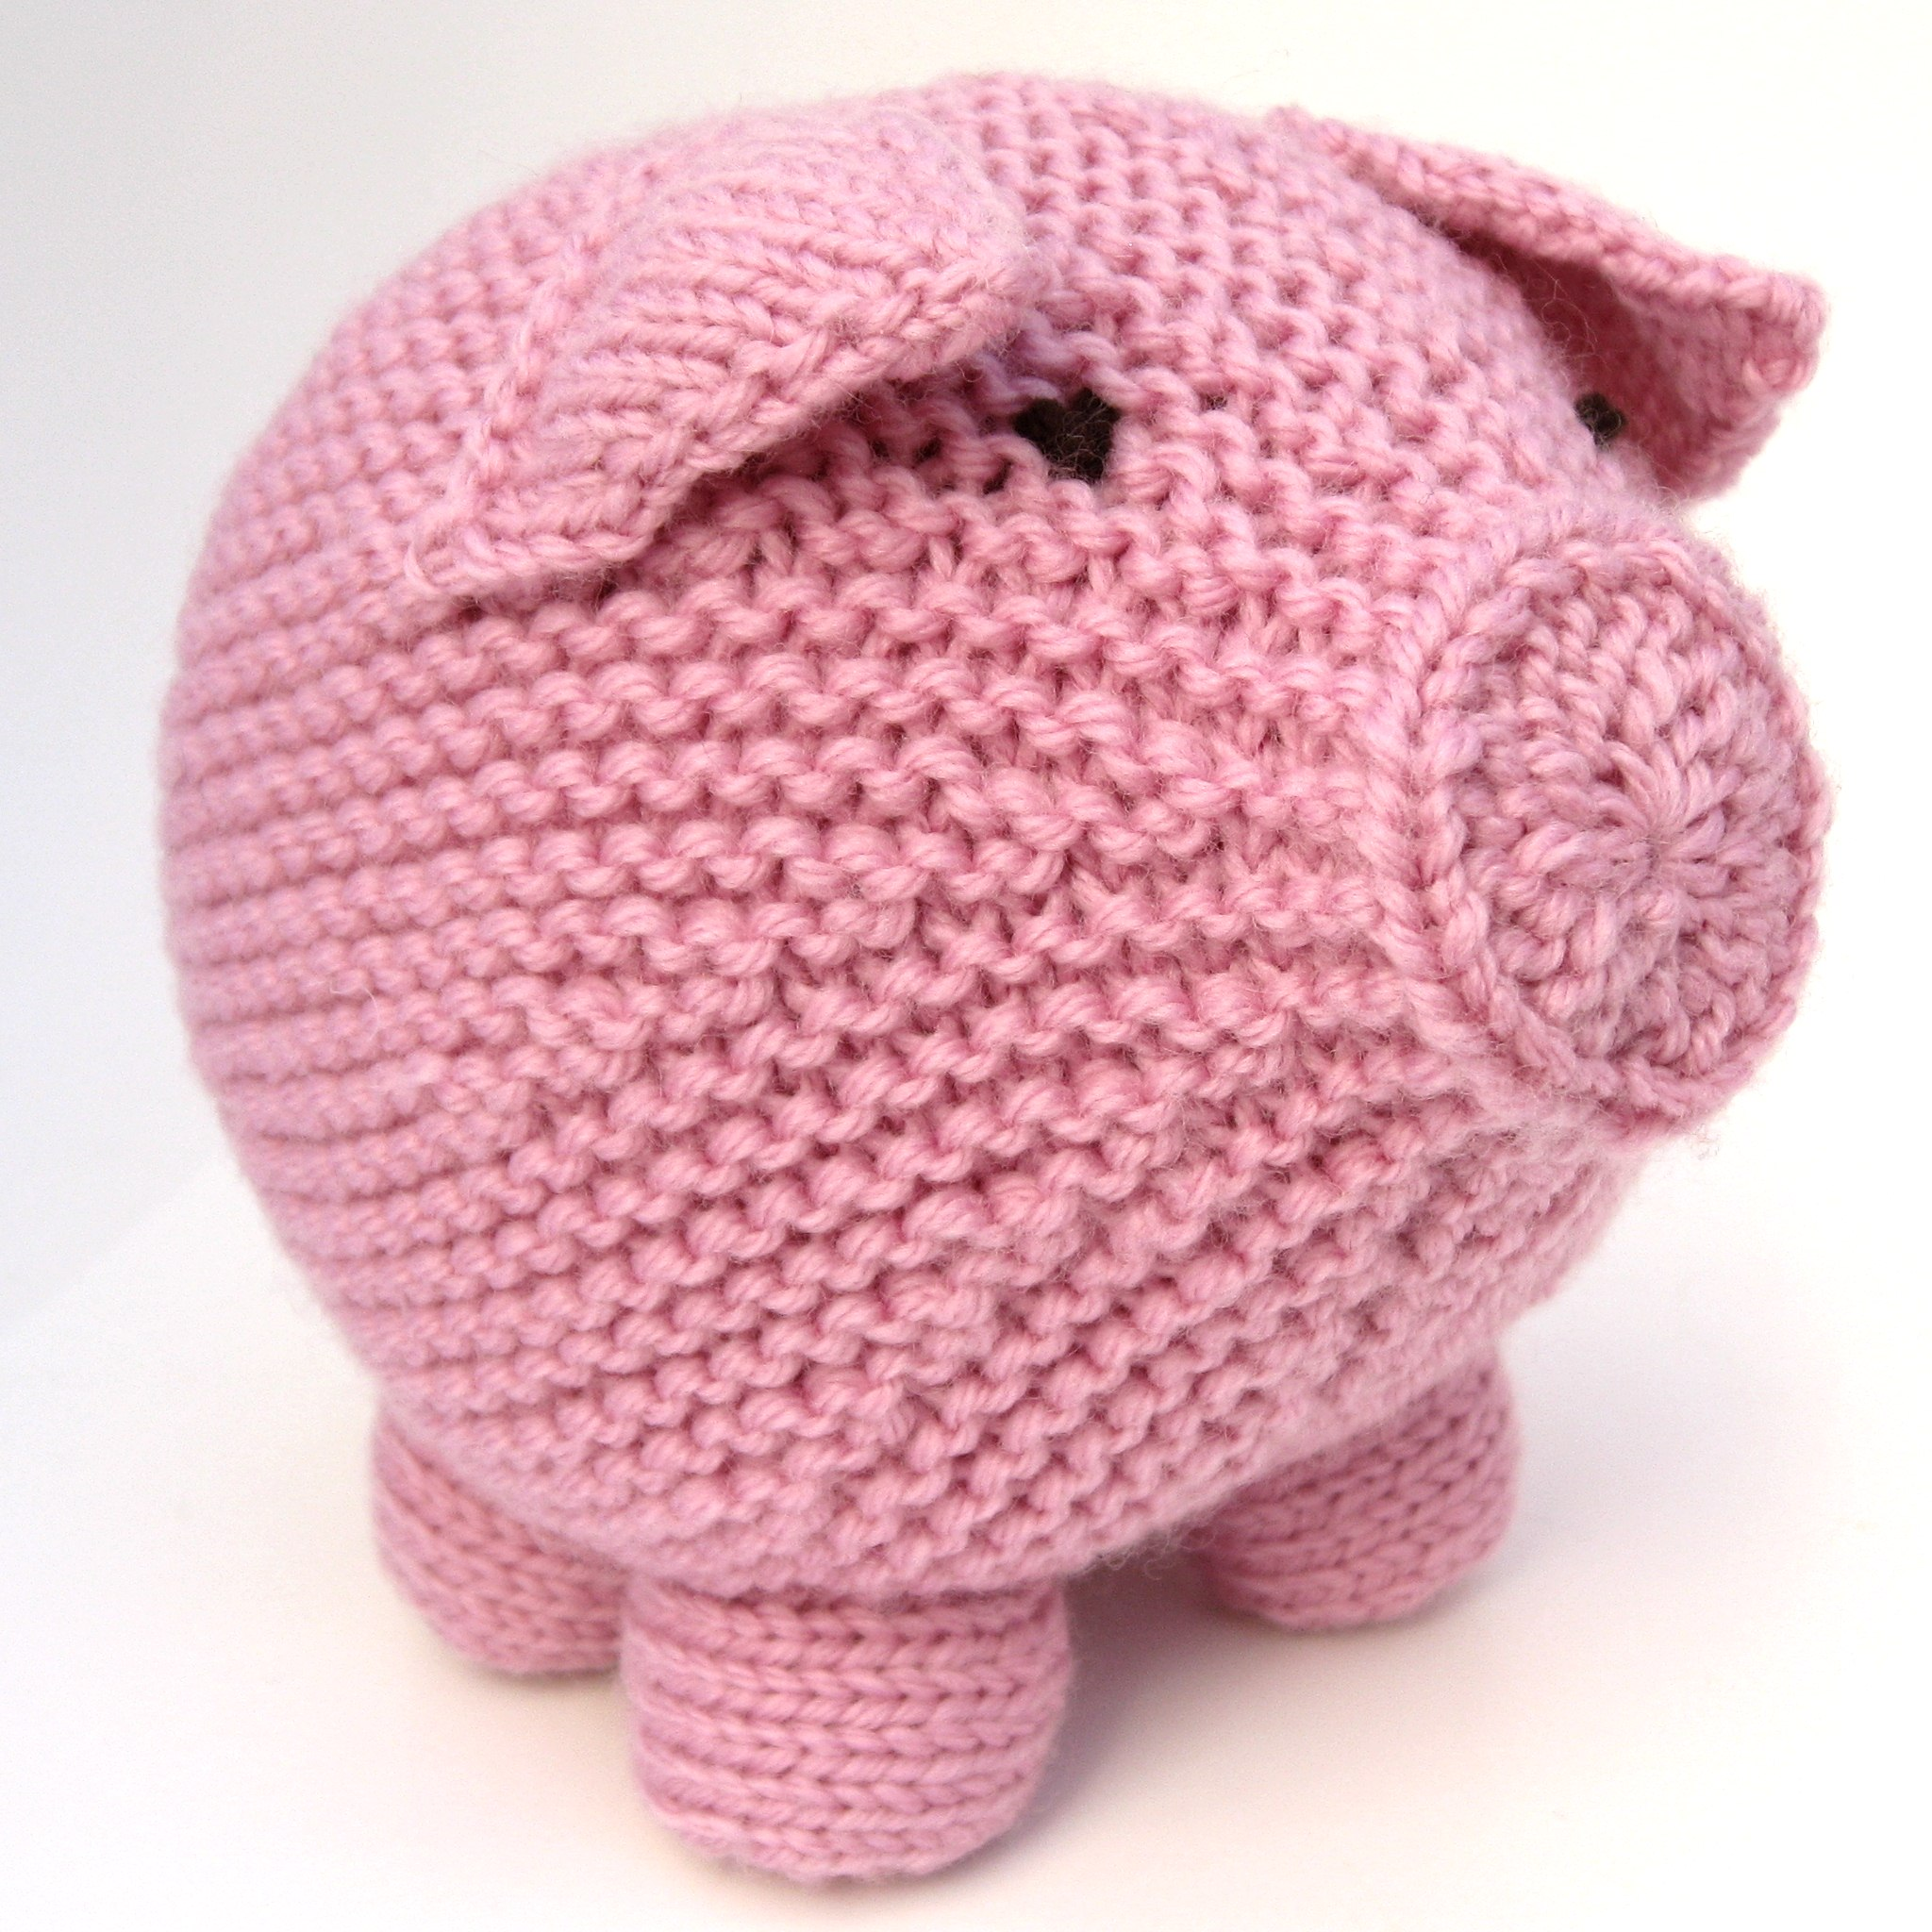 Knitting Toys In The Round : Round pig hints and tips